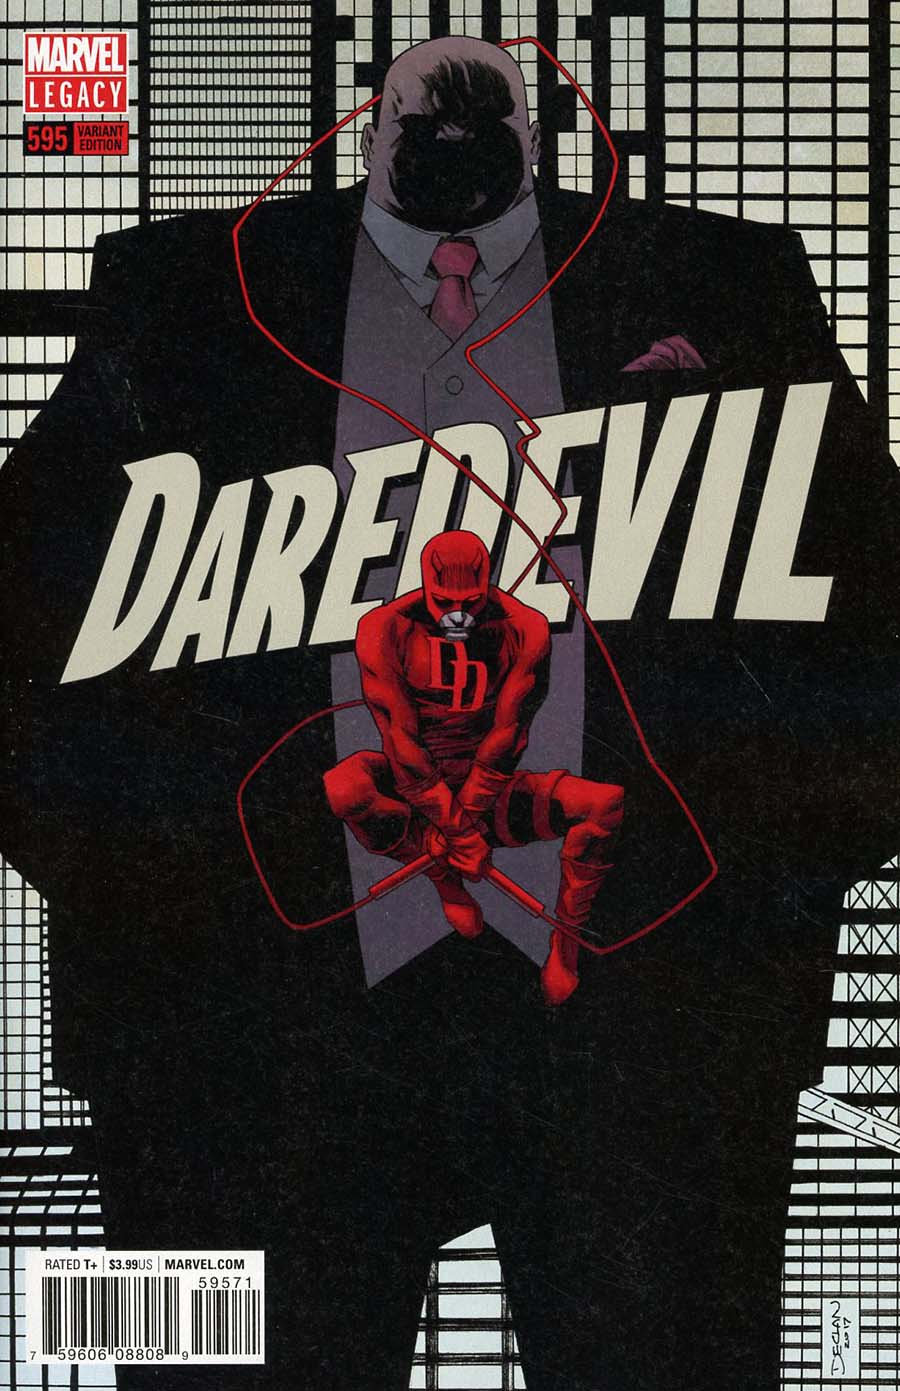 Daredevil Vol 5 #595 Cover E Incentive Incentive Declan Shalvey Variant Cover (Marvel Legacy Tie-In)